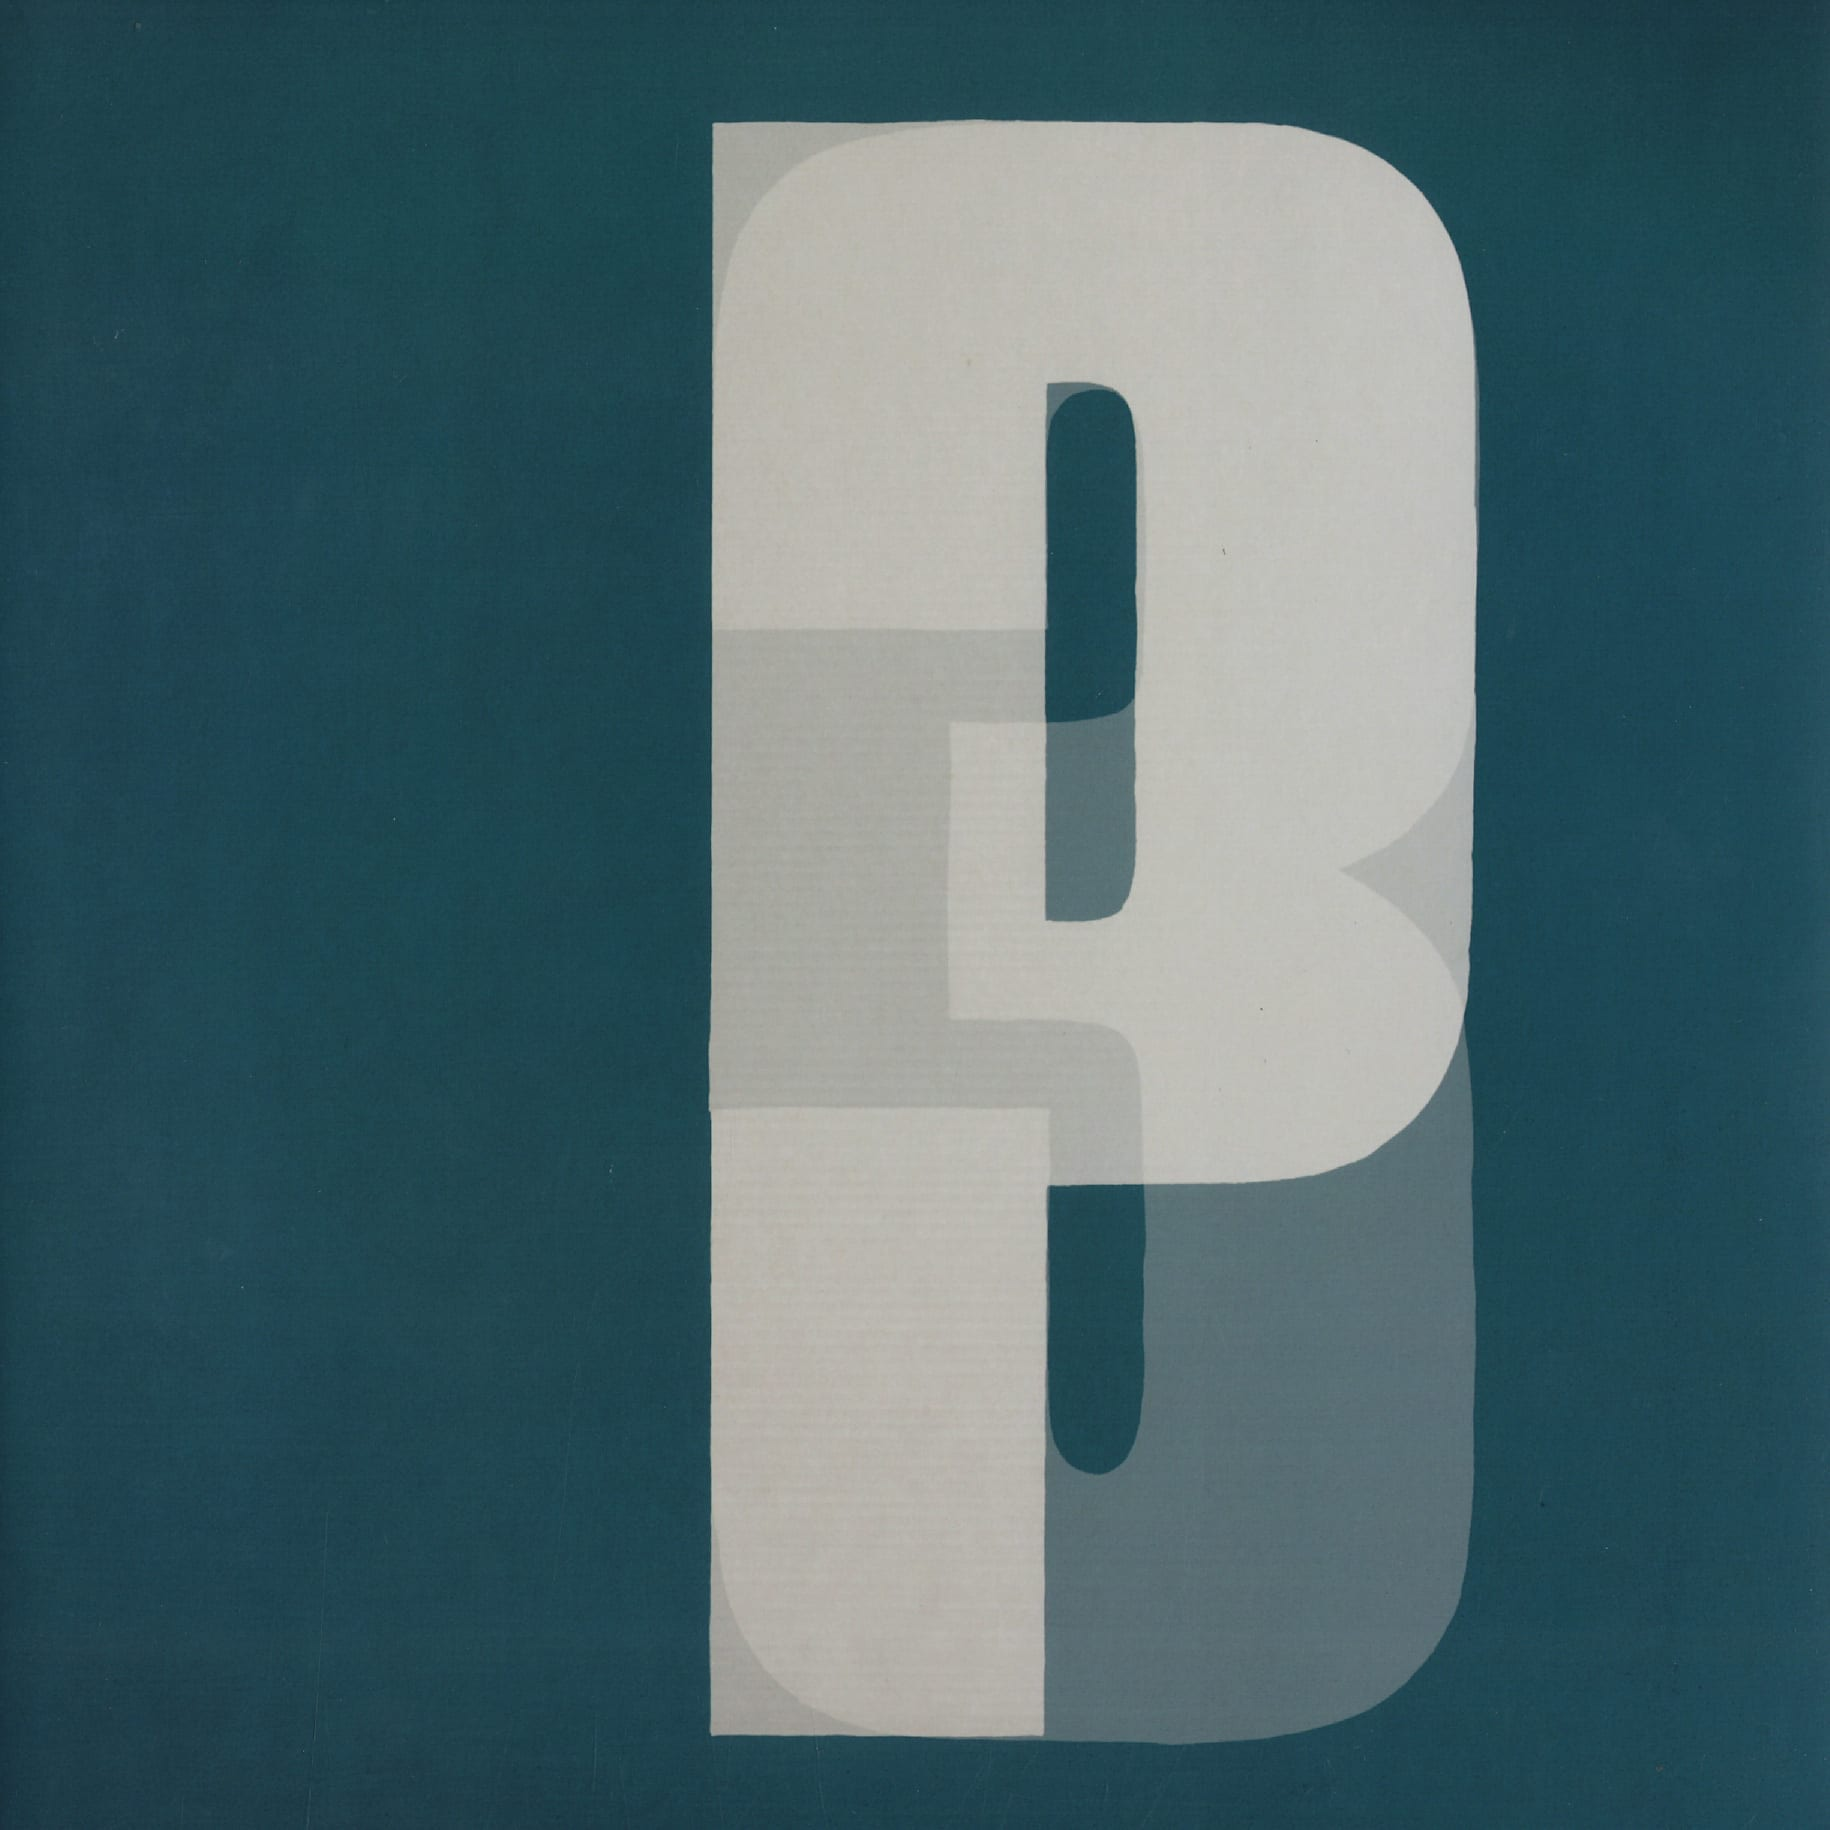 portishead-third